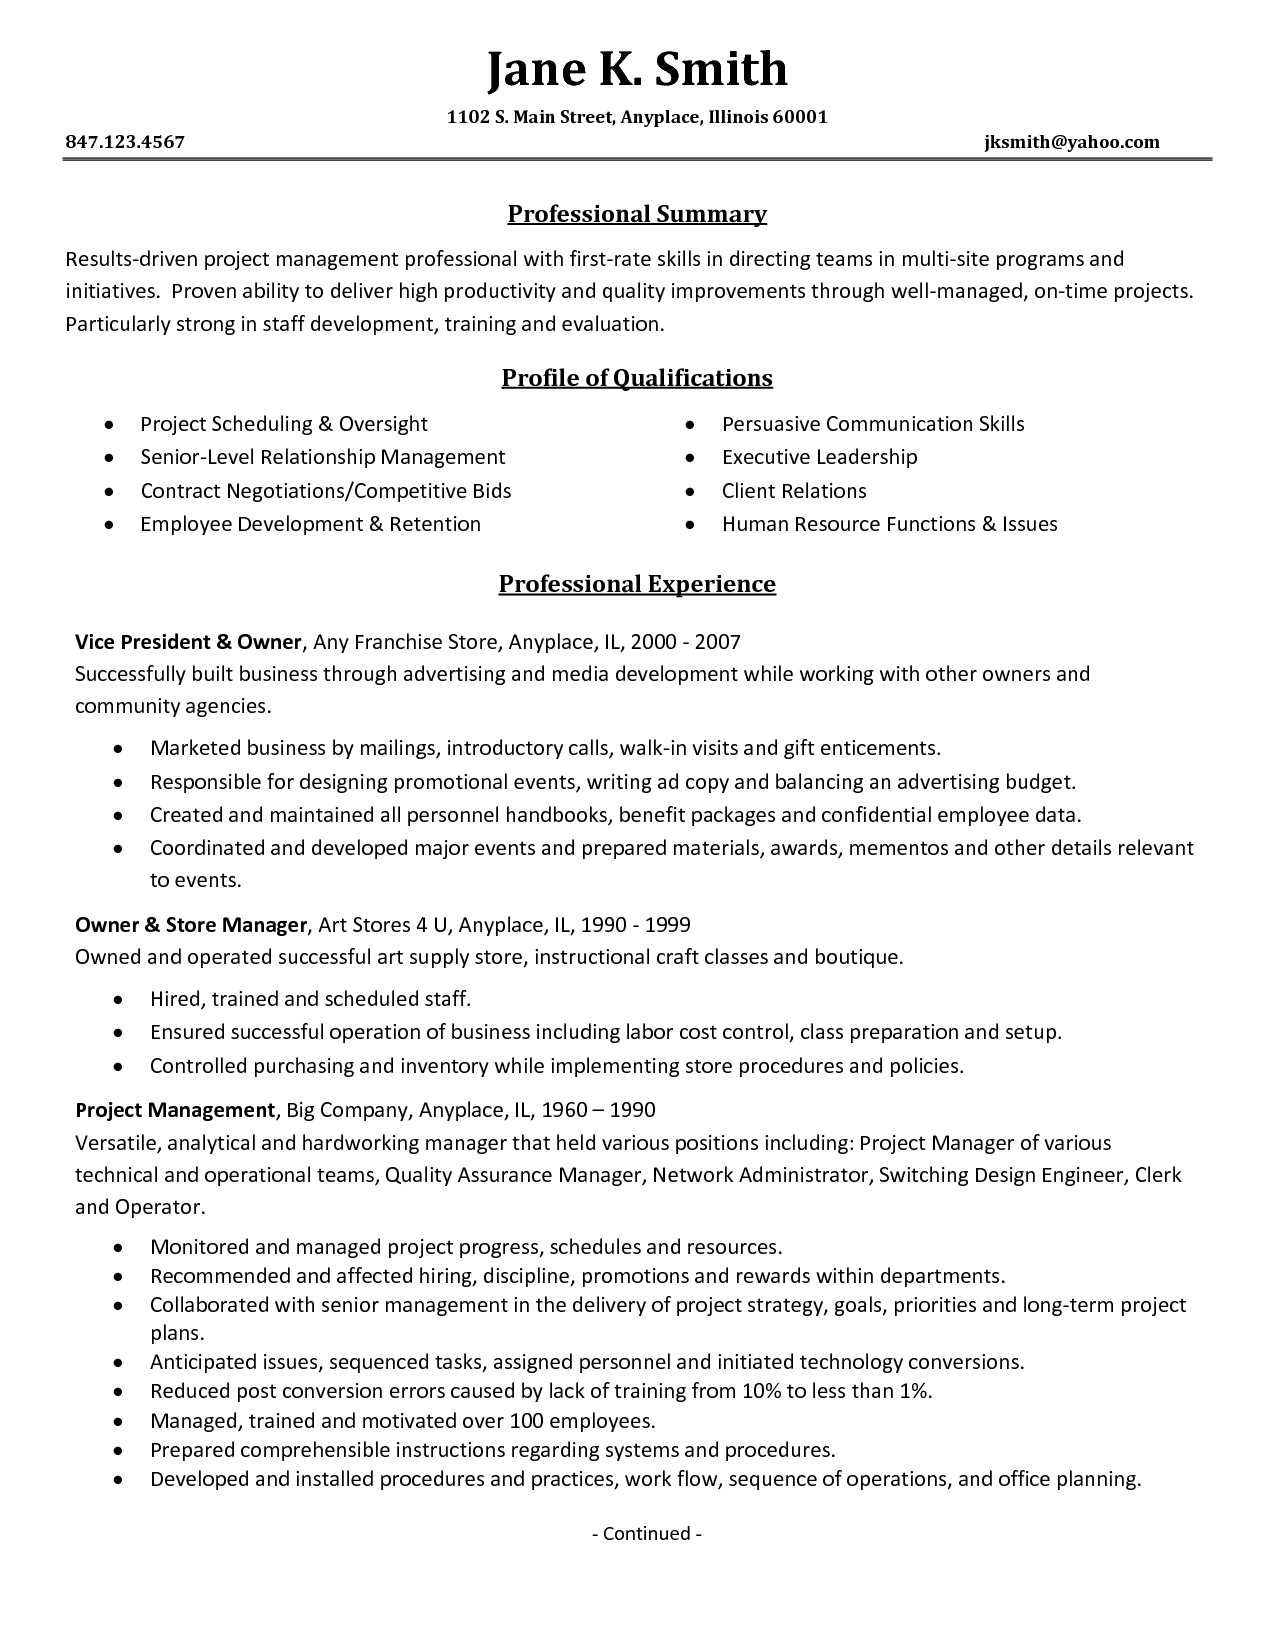 Business Management Resume Leadership Skills Resume Leadership Skills Resume Template…  Job